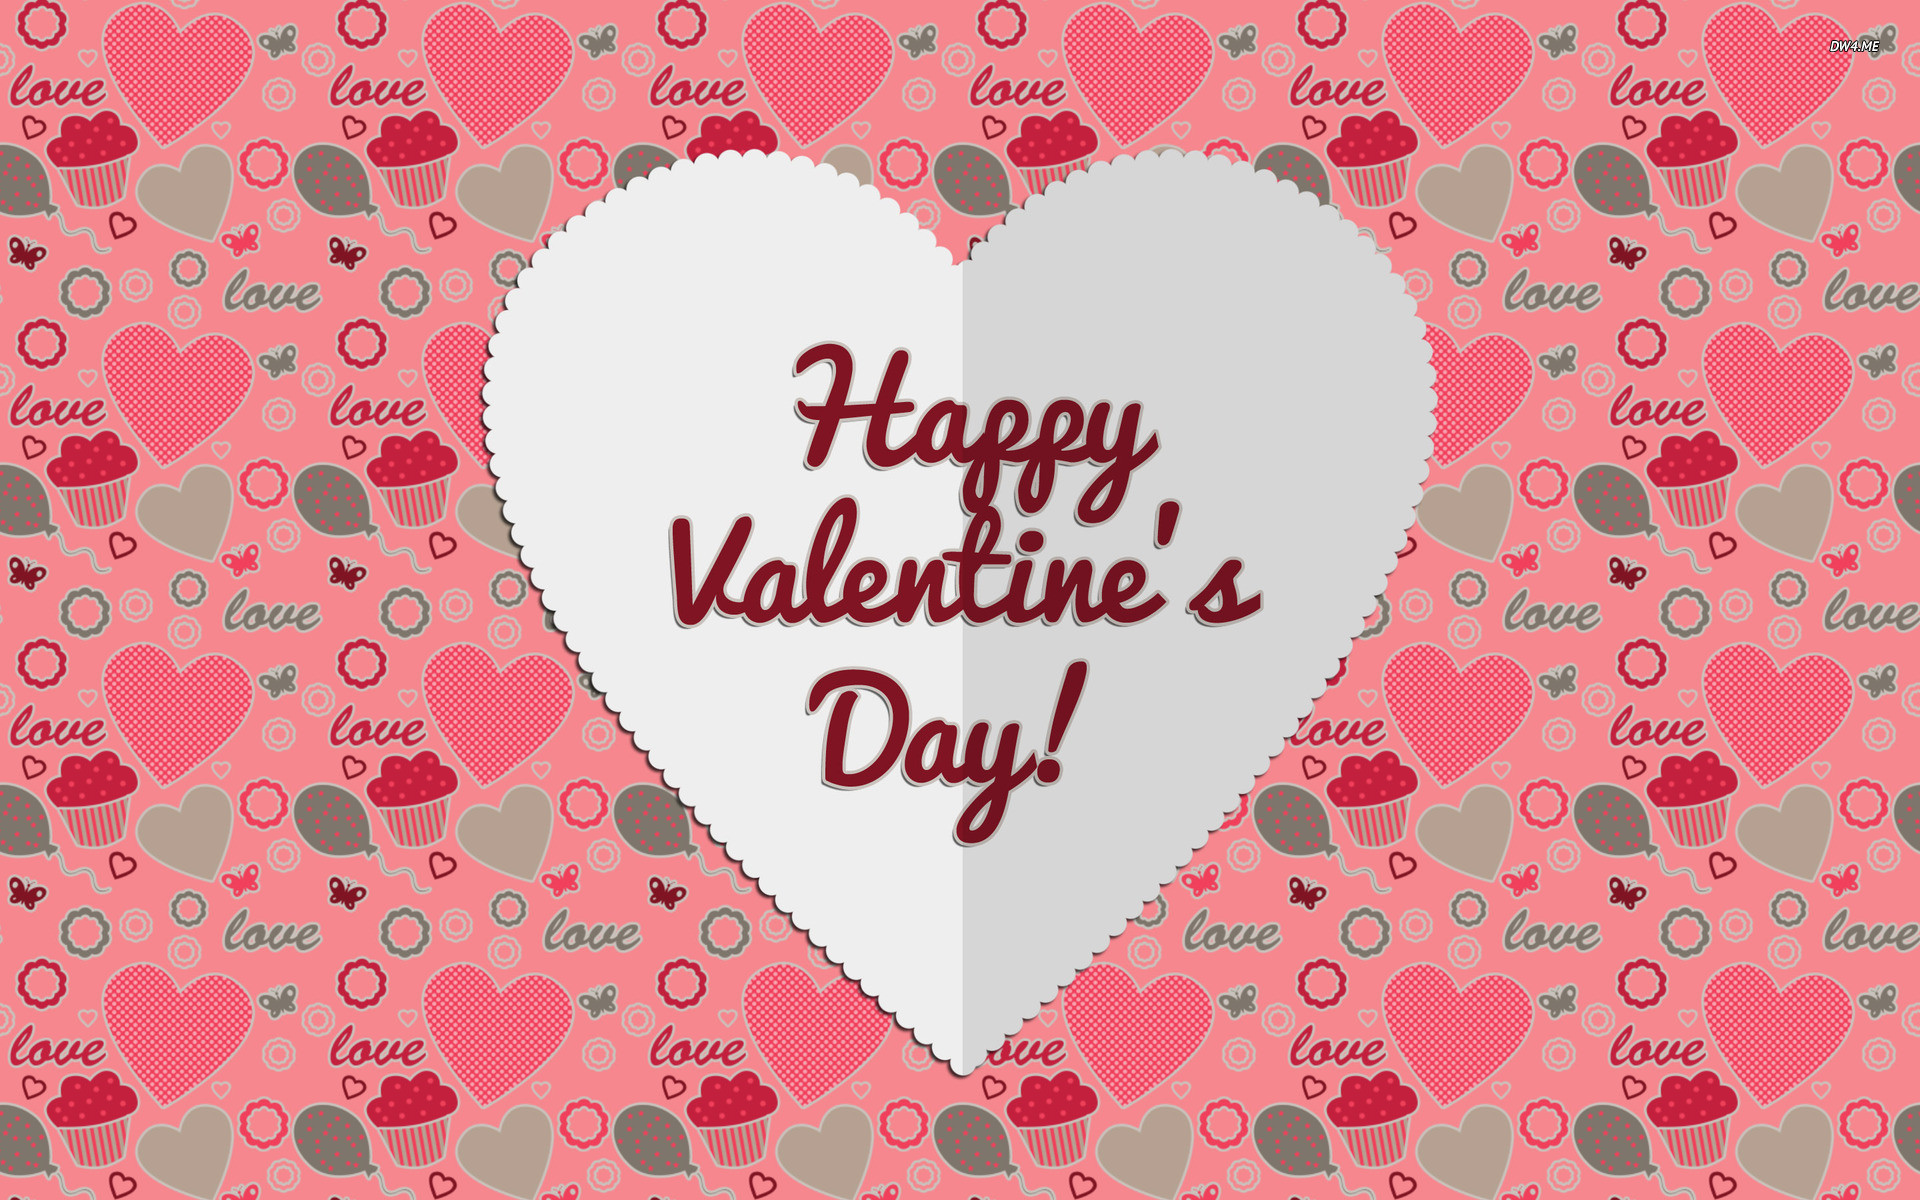 Valentine s Day Wallpaper Valentines Day Holidays (82 Wallpapers) – HD  Wallpapers